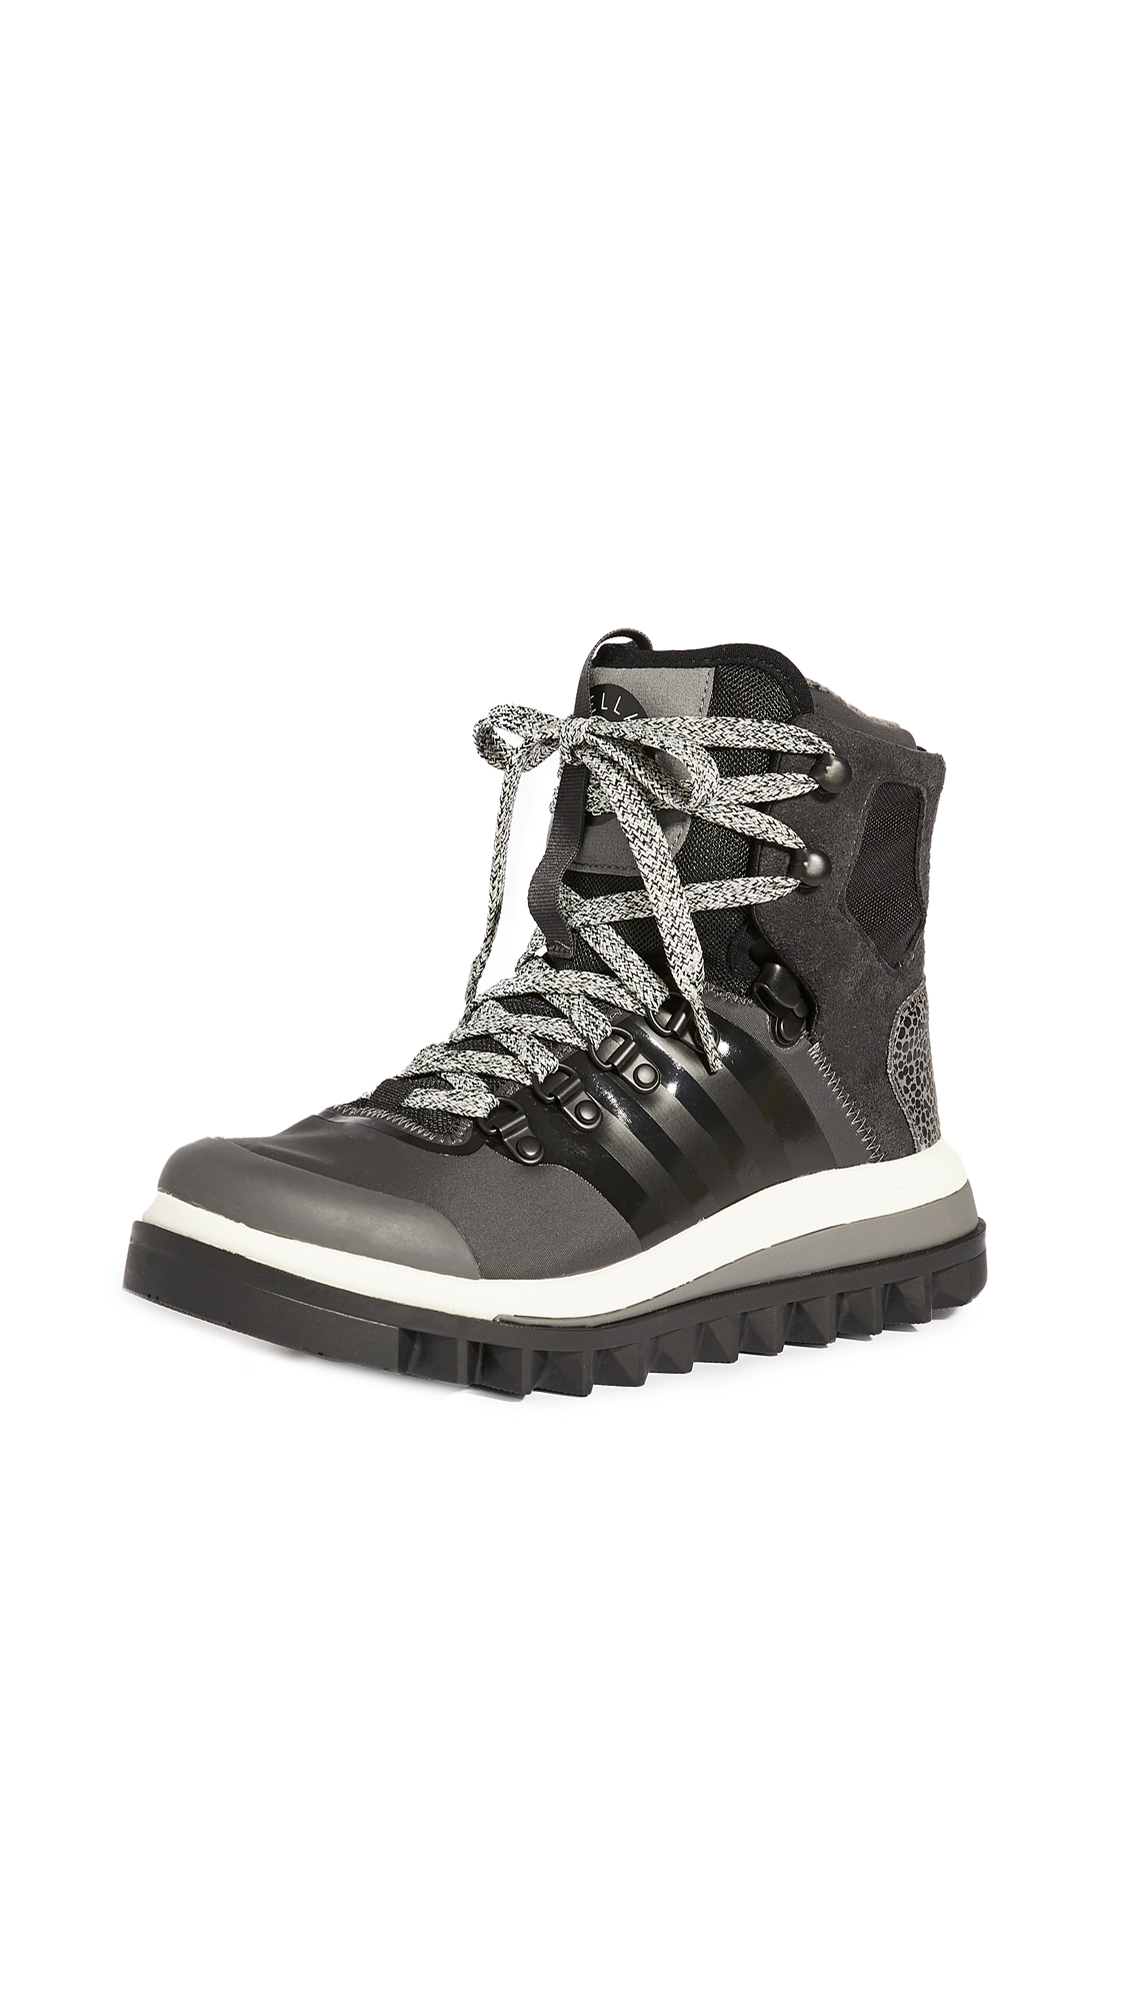 adidas by Stella McCartney ASMC Eulampis Boots